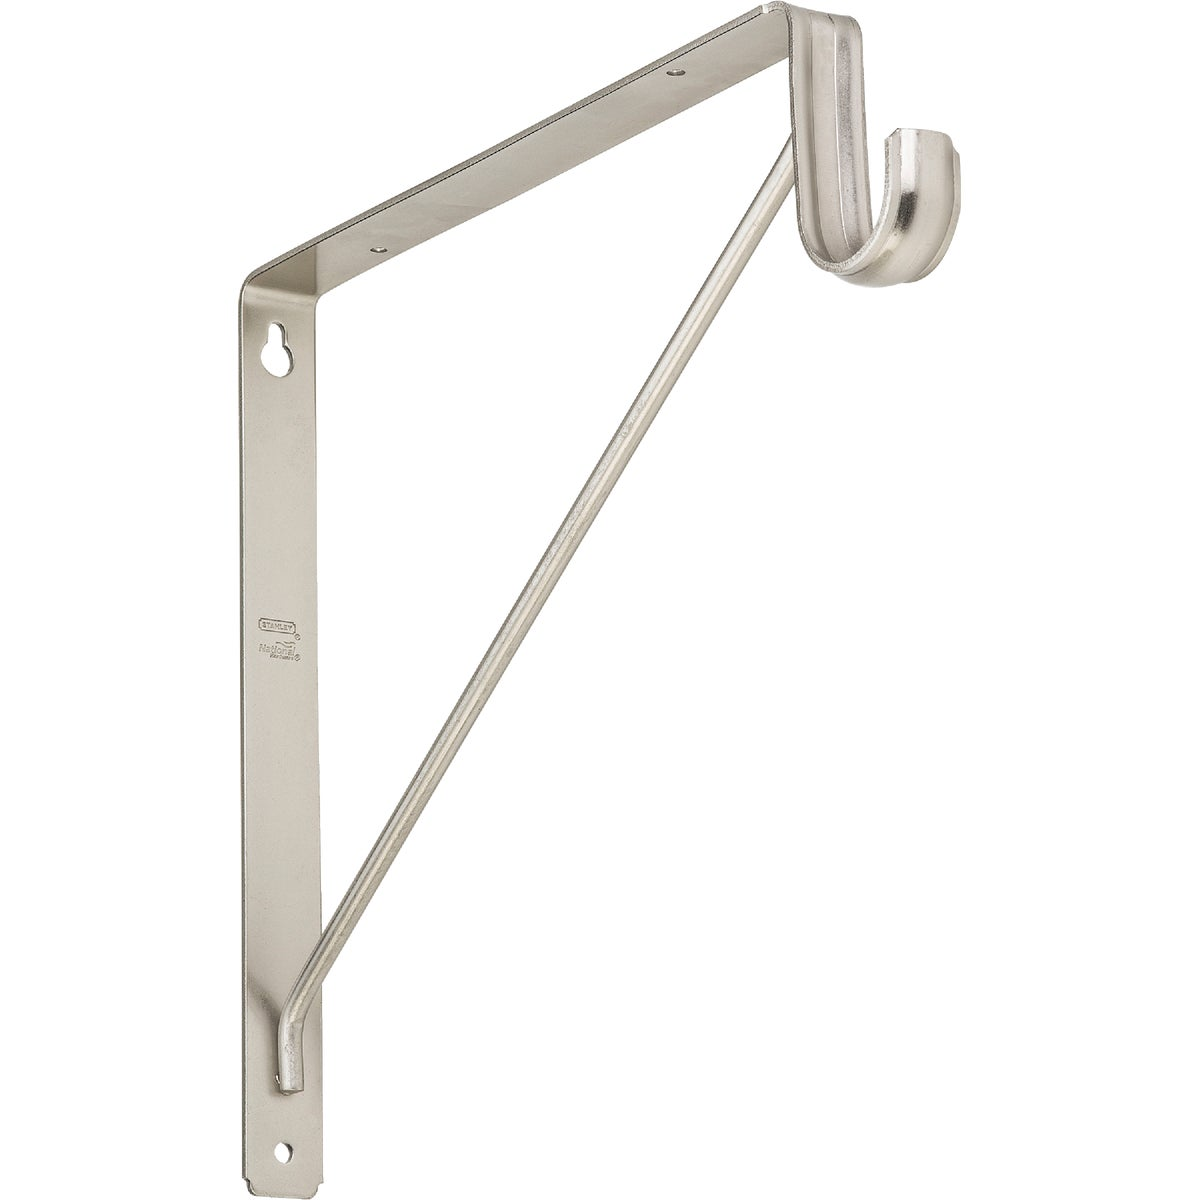 SN SHELF & ROD BRACKET